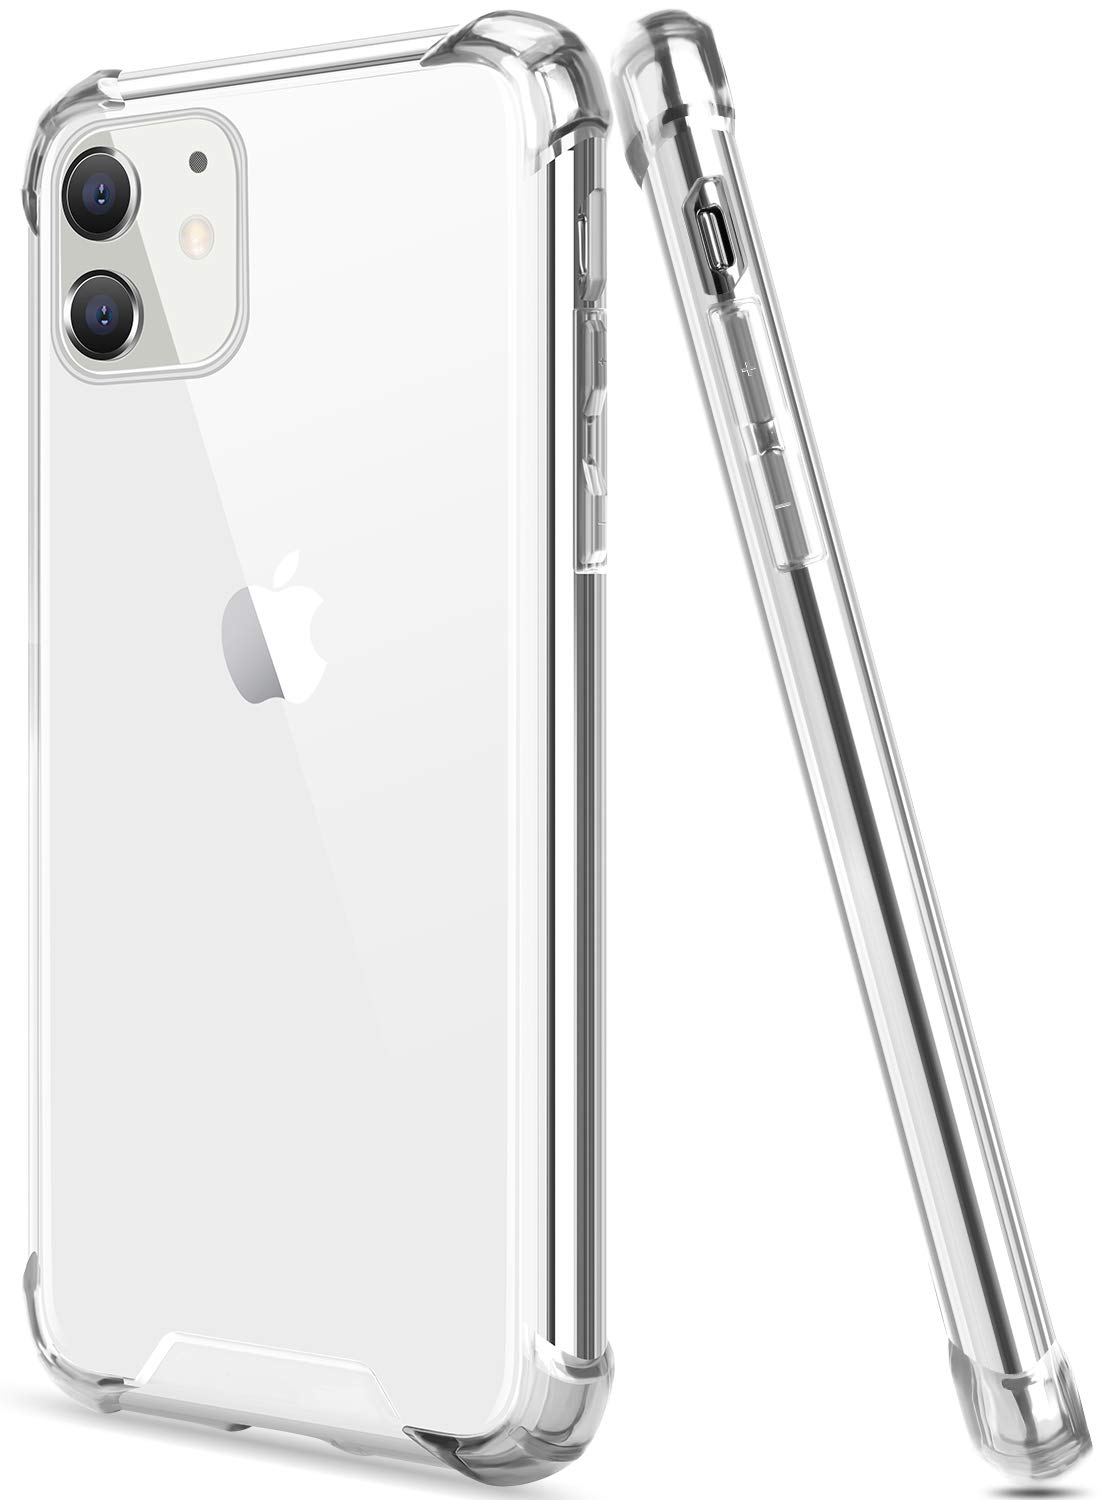 Salawat for iPhone 11 Case, Clear iPhone 11 Case Cute Gradient Slim Phone Case Cover Reinforced TPU Bumper Hard PC Back Shockproof Protective Case for iPhone 11 6.1inch 2019 (Crystal Clear)